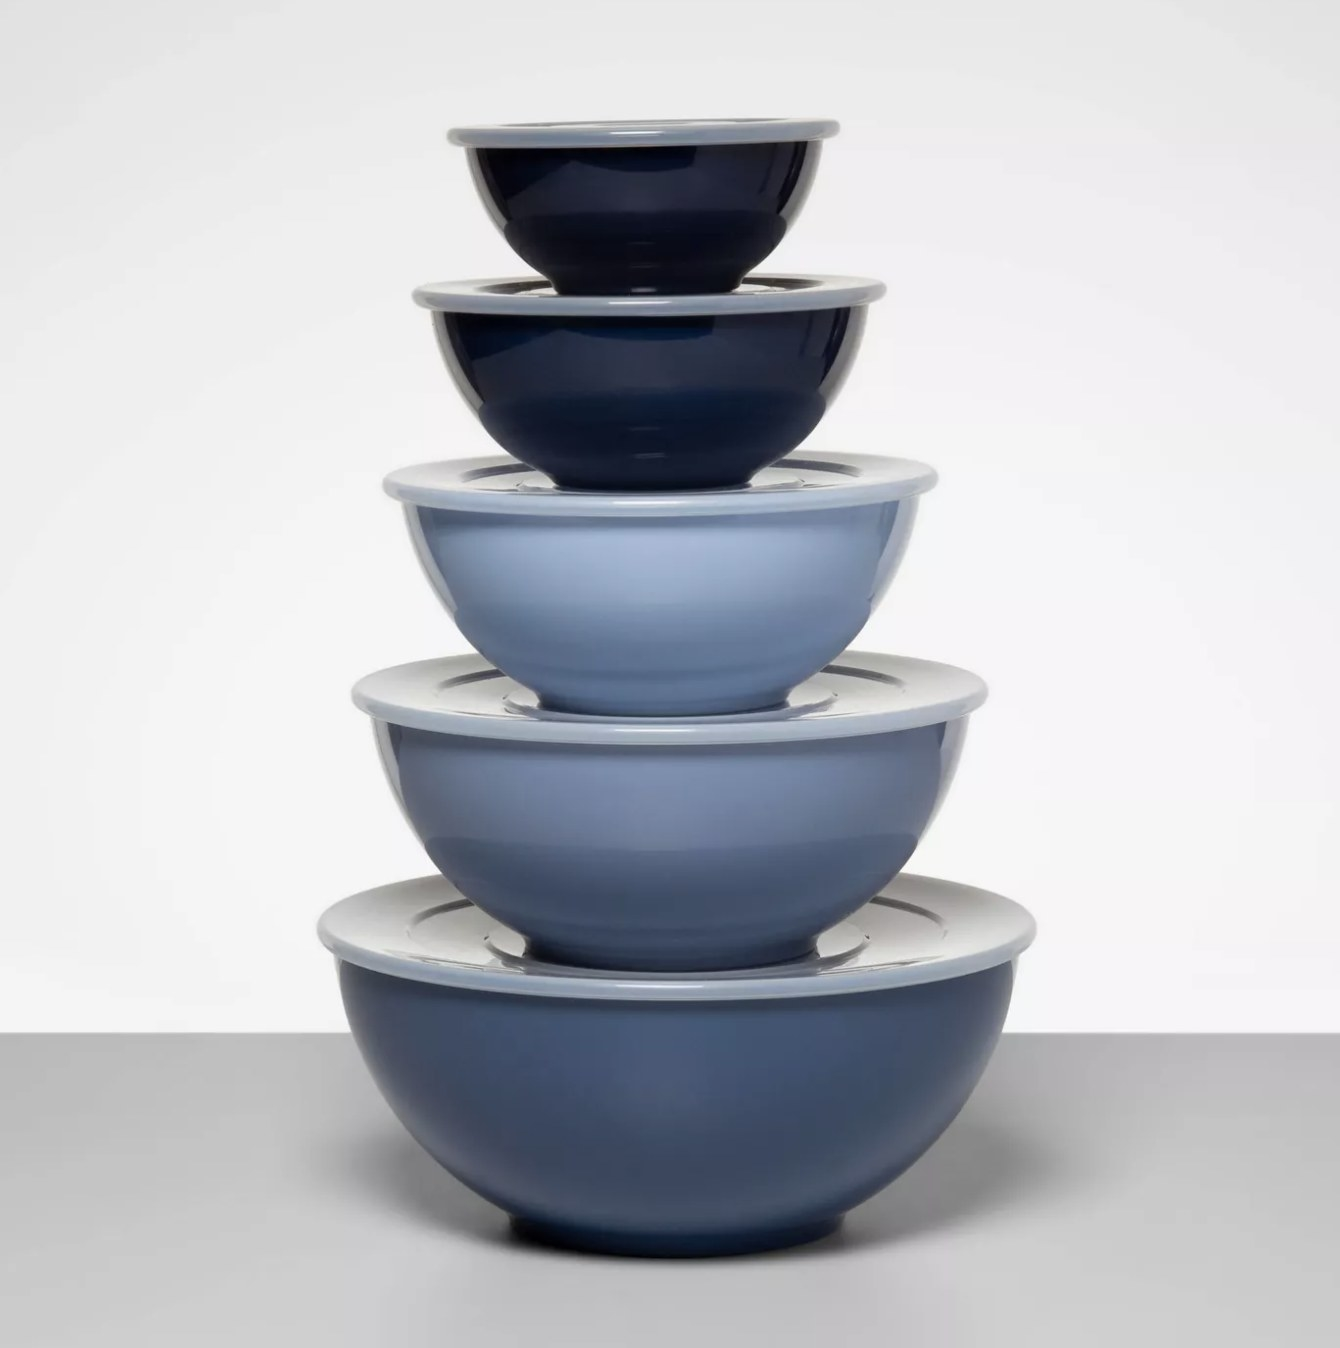 The pale blue mixing bowls stacked with lids